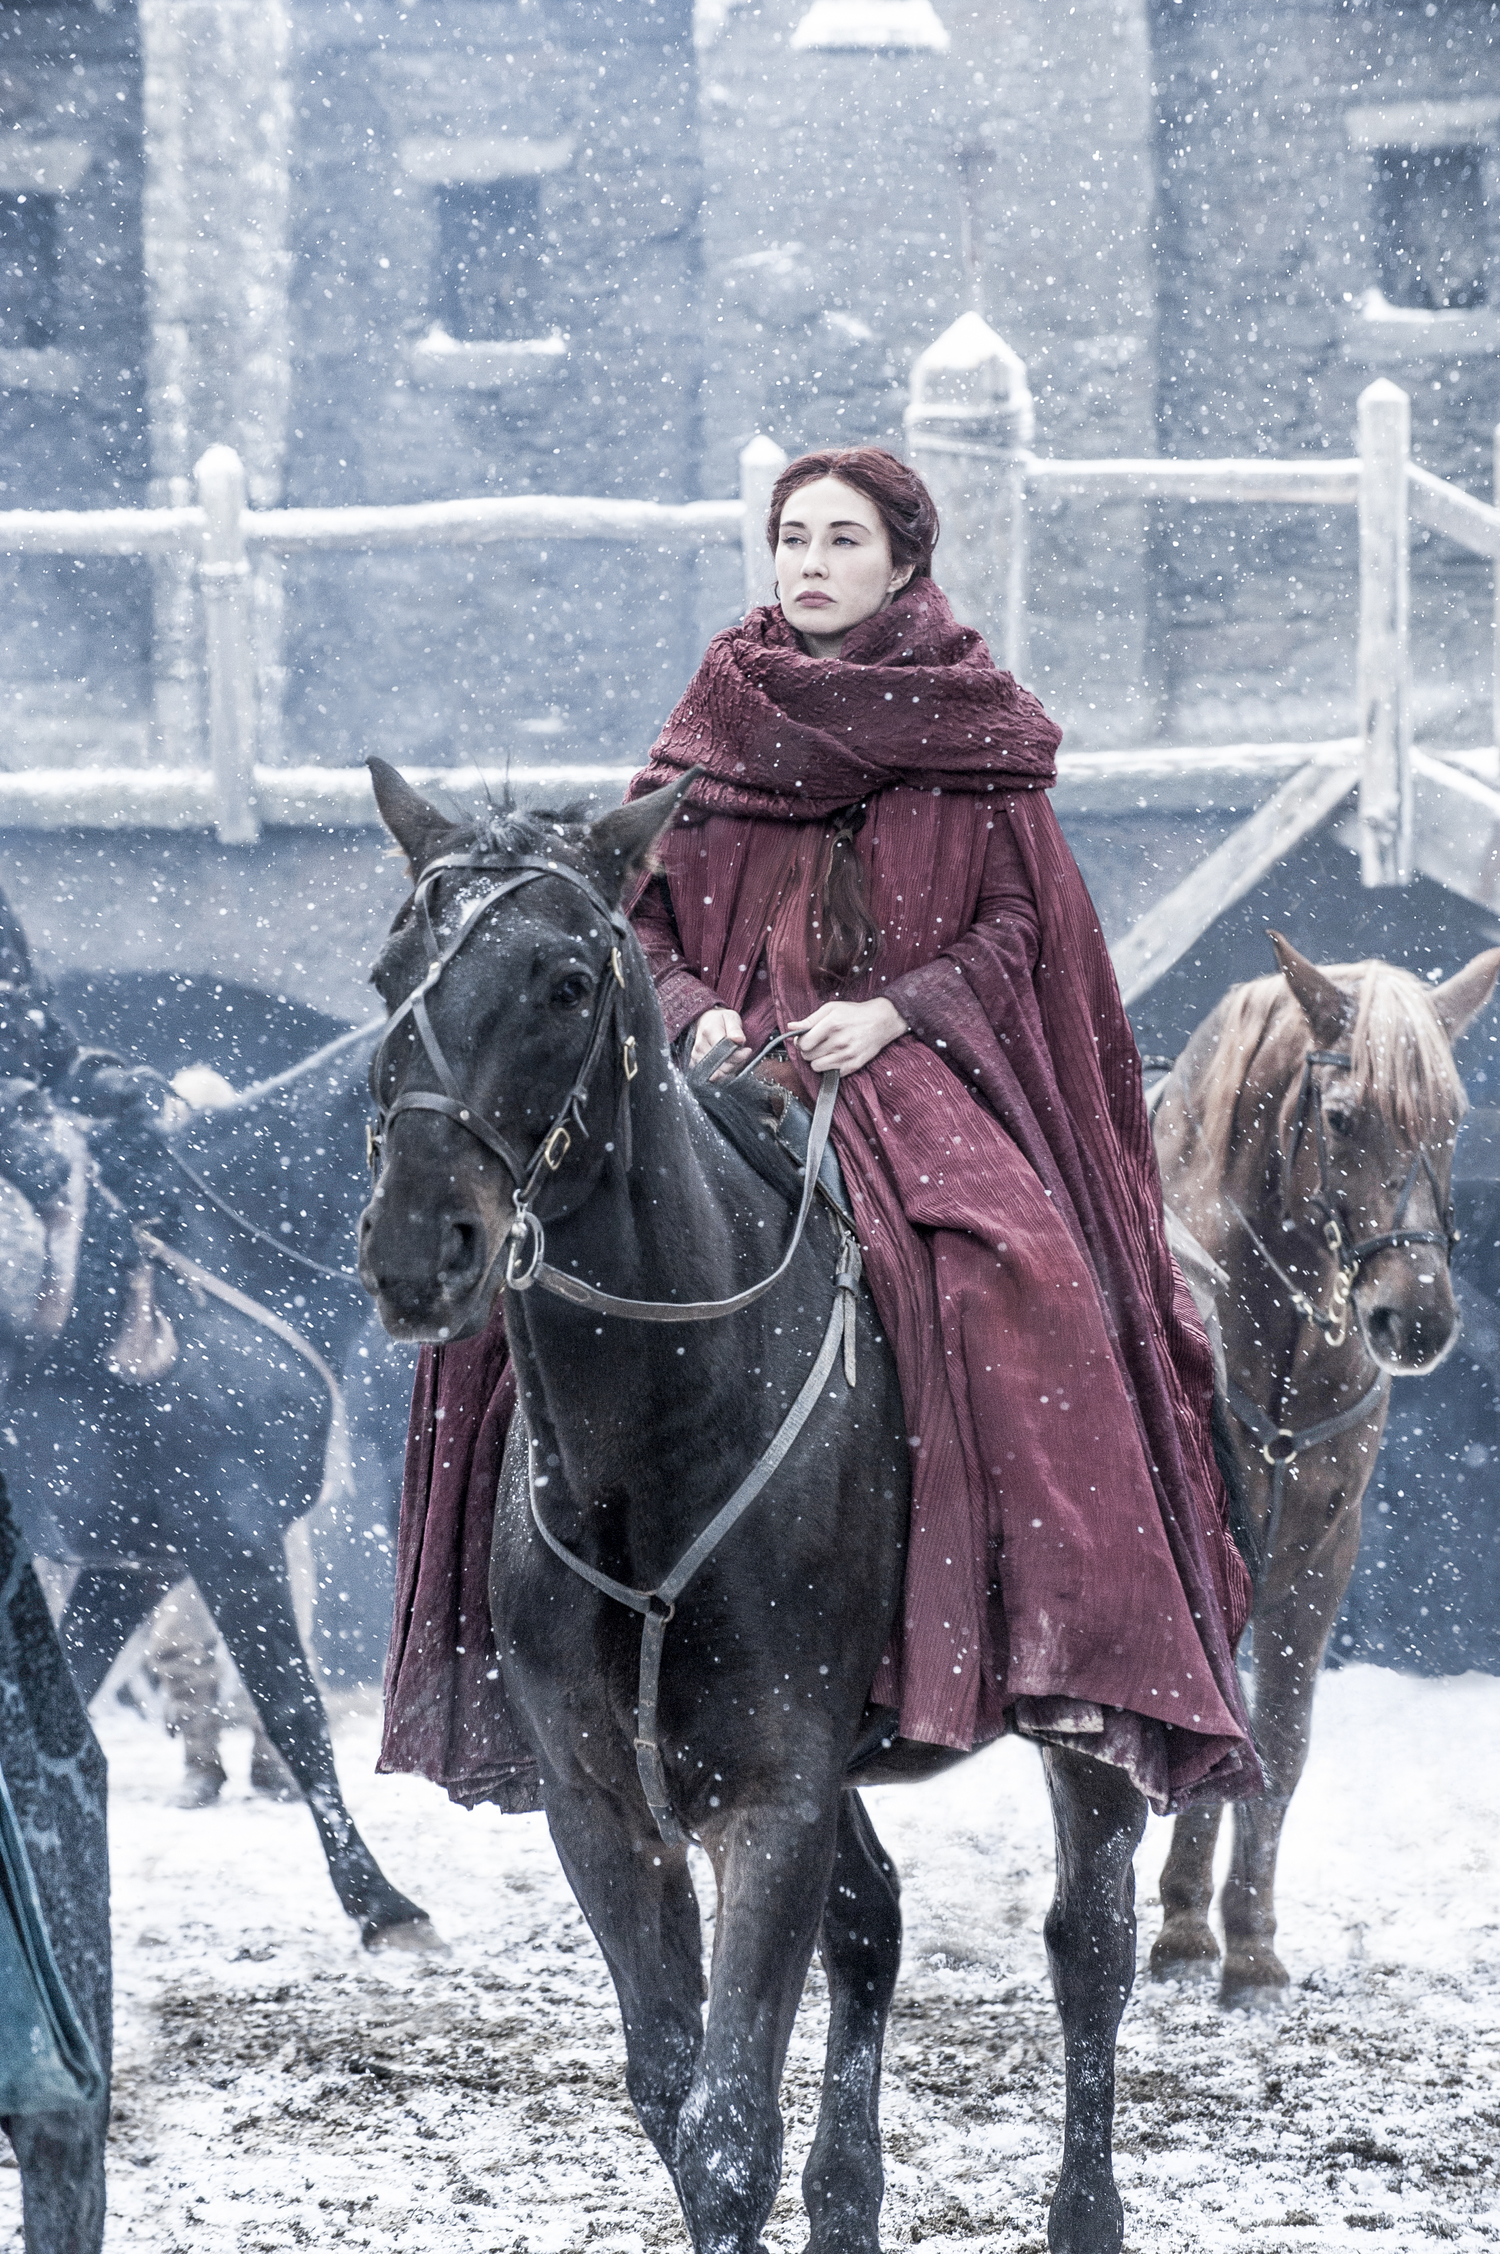 game of thrones season 6 photos, melisandre, carice van houten